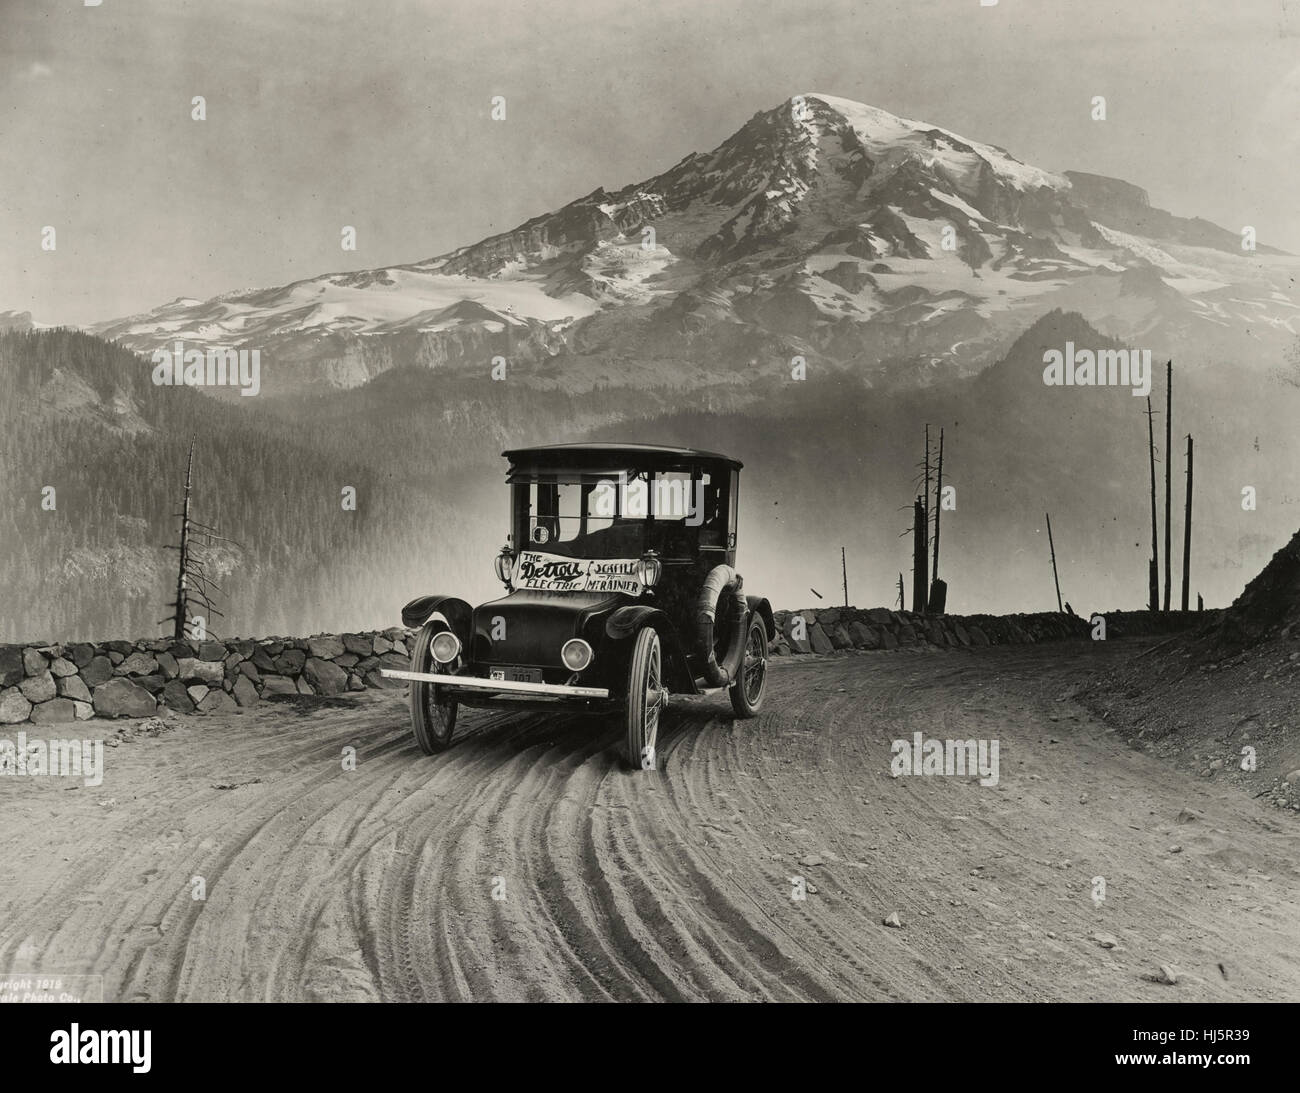 Detroit Electric auto on promotional tour through mountains from Seattle to Mt. Rainier. Photograph shows electric - Stock Image